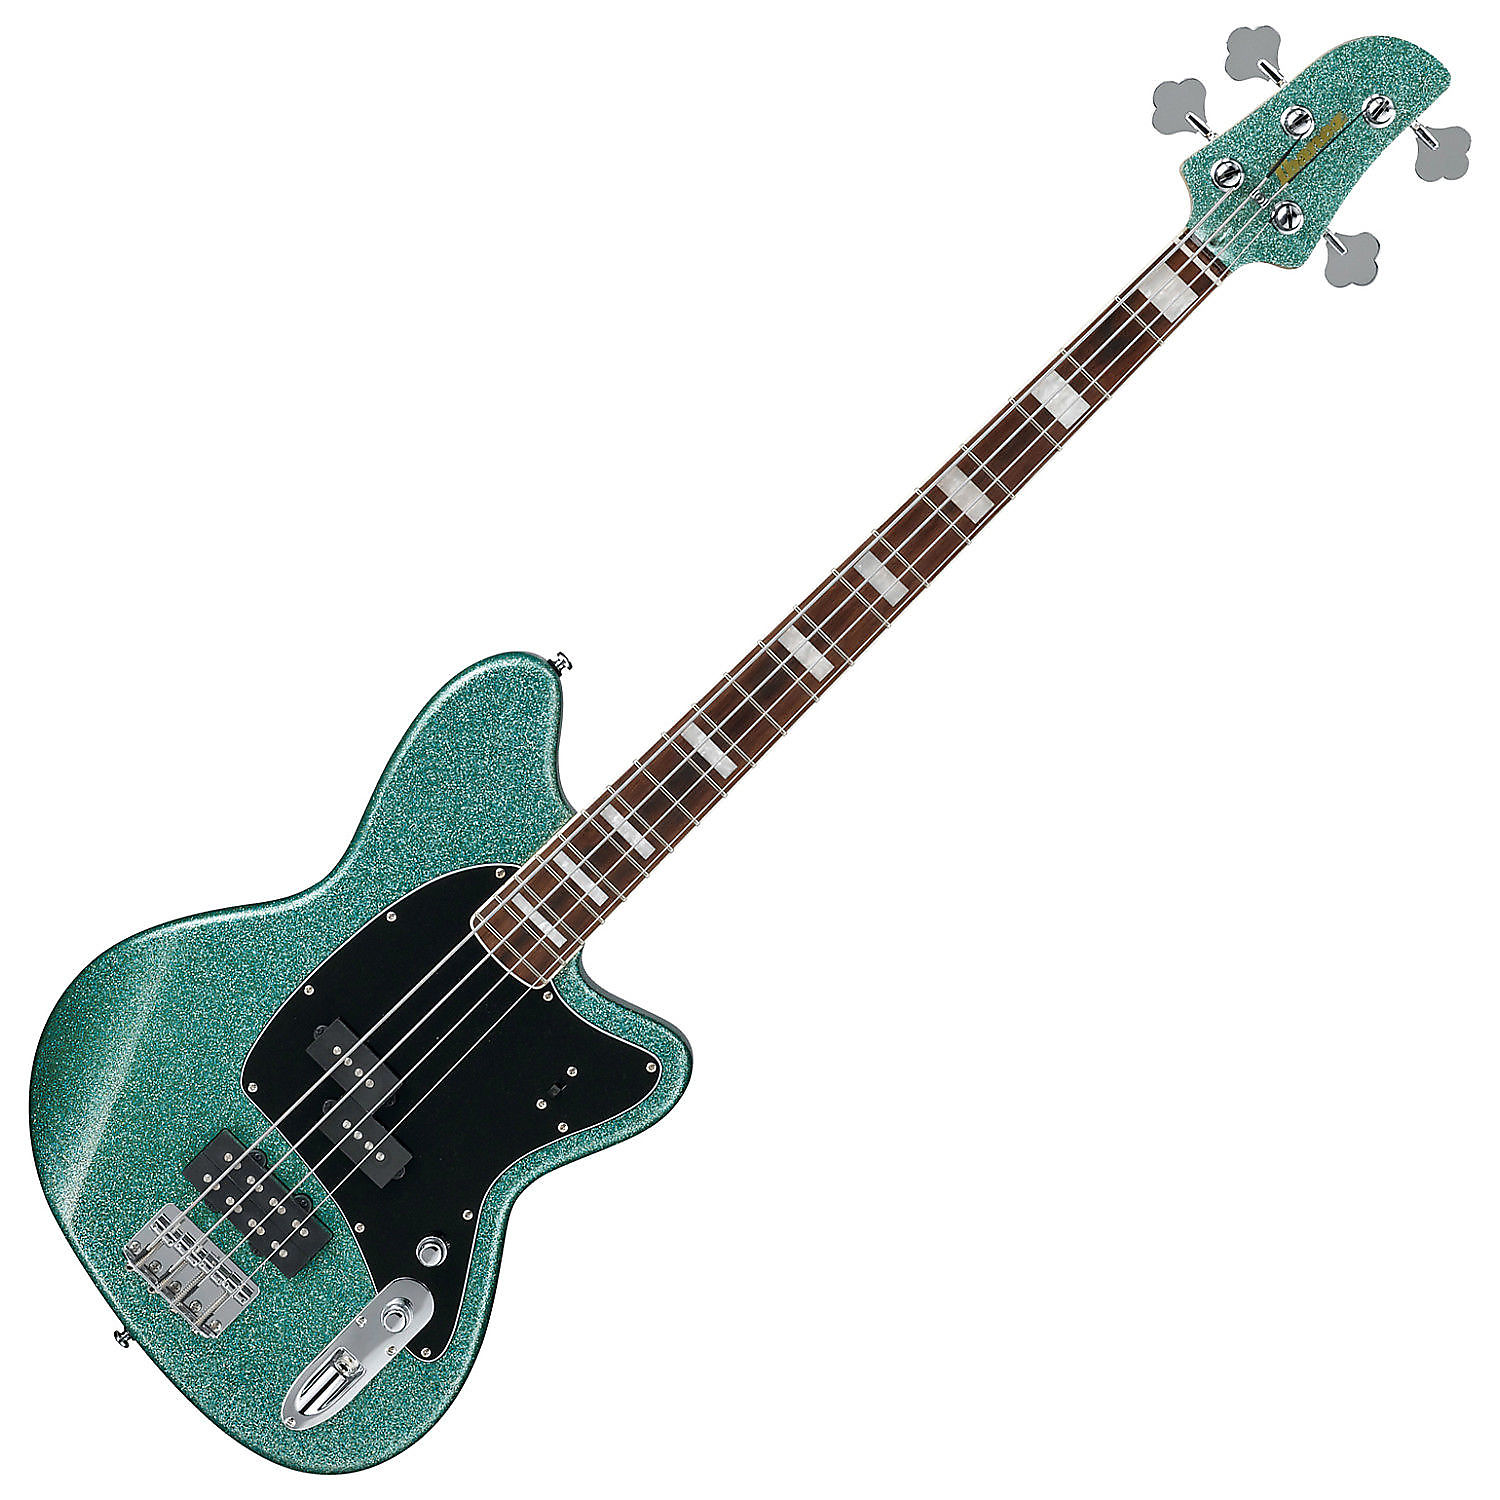 ibanez tmb310 tsp talman electric bass turquoise sparkle reverb. Black Bedroom Furniture Sets. Home Design Ideas